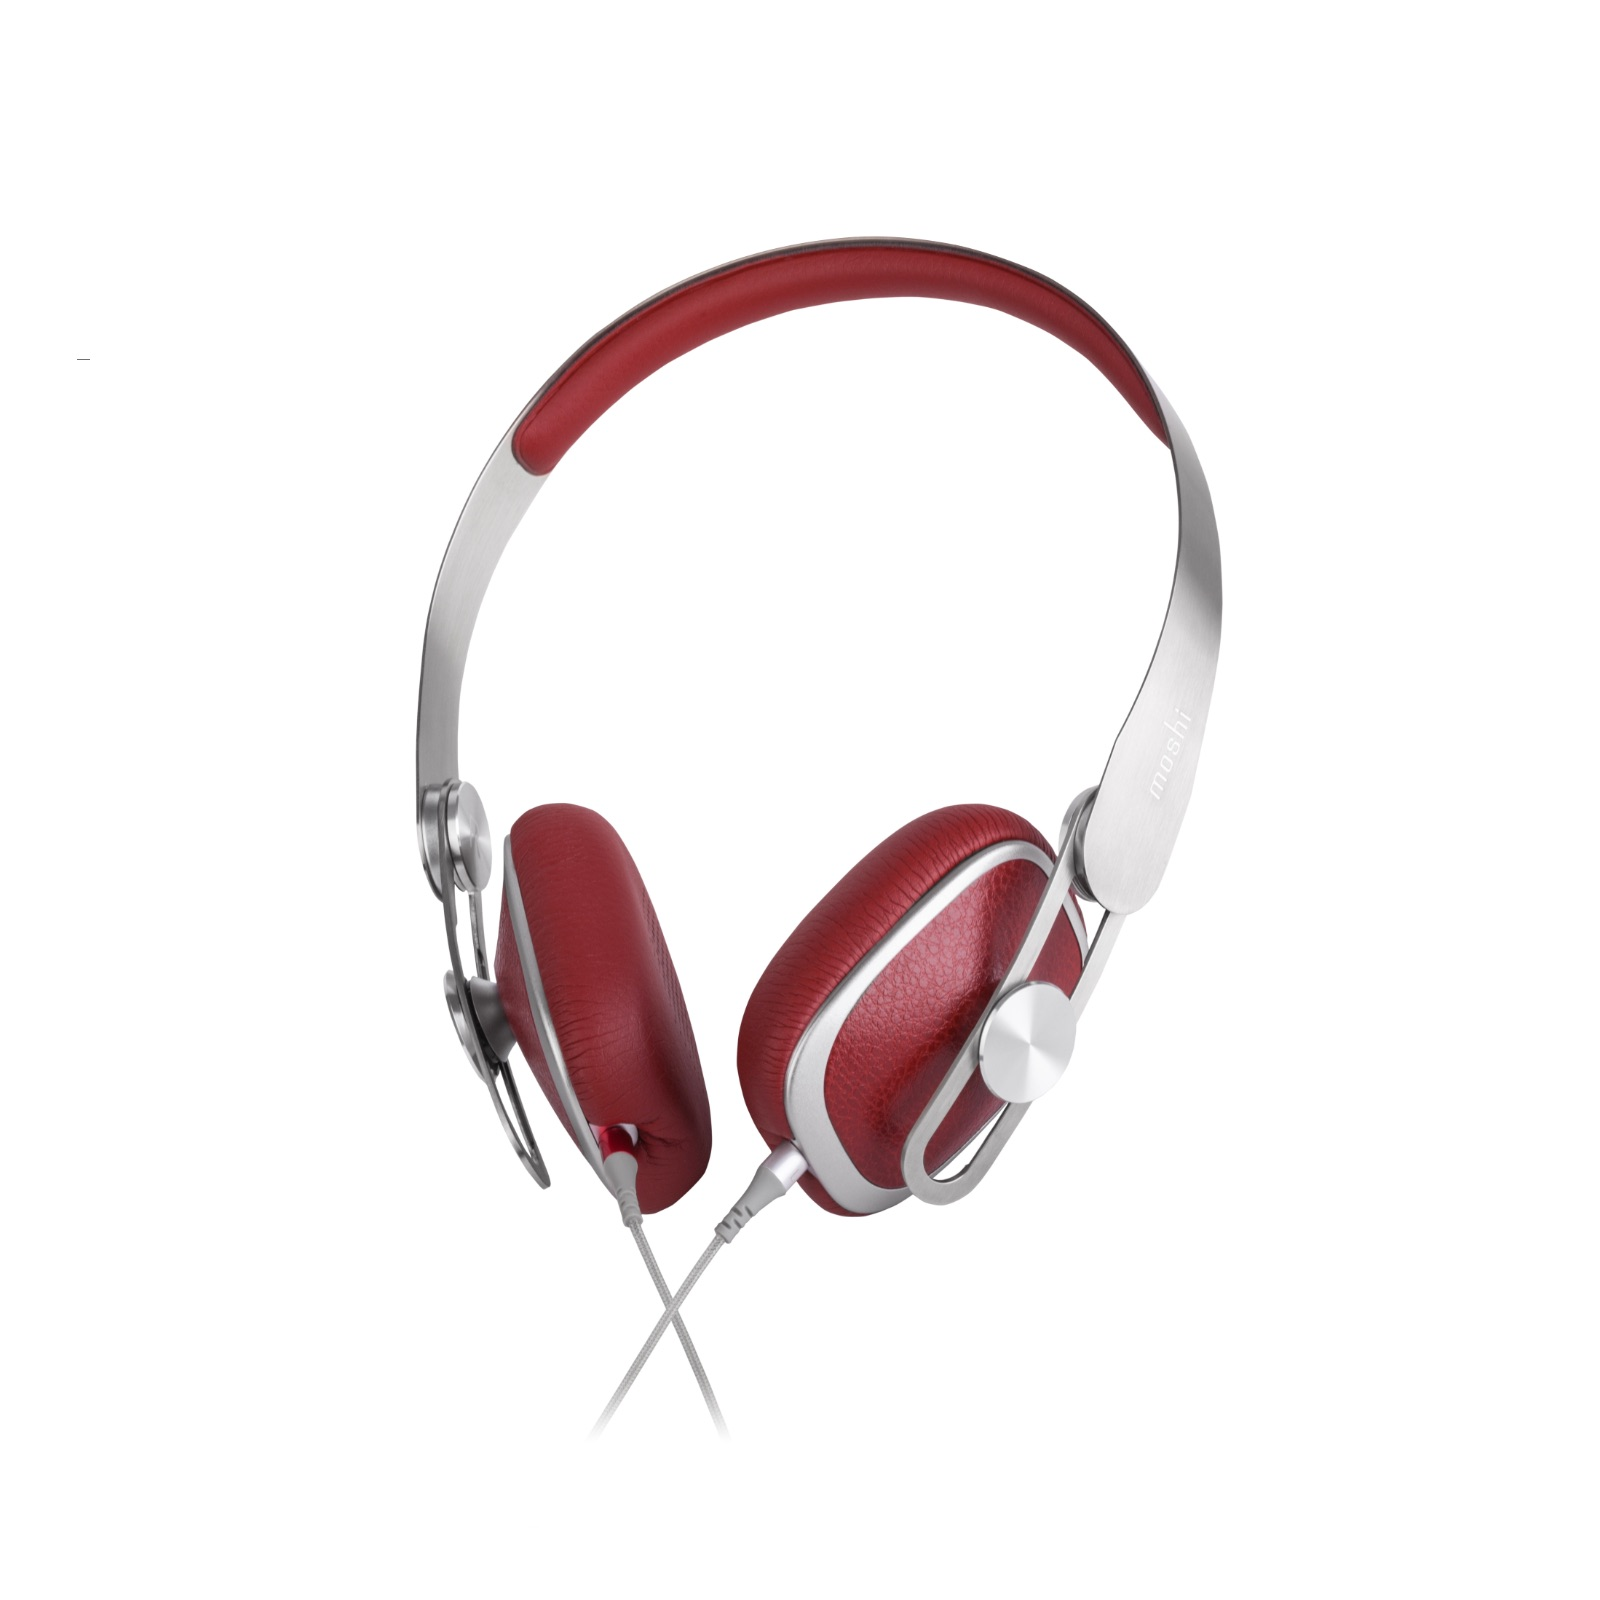 Avanti C USB Type-C On-ear Headphones-image